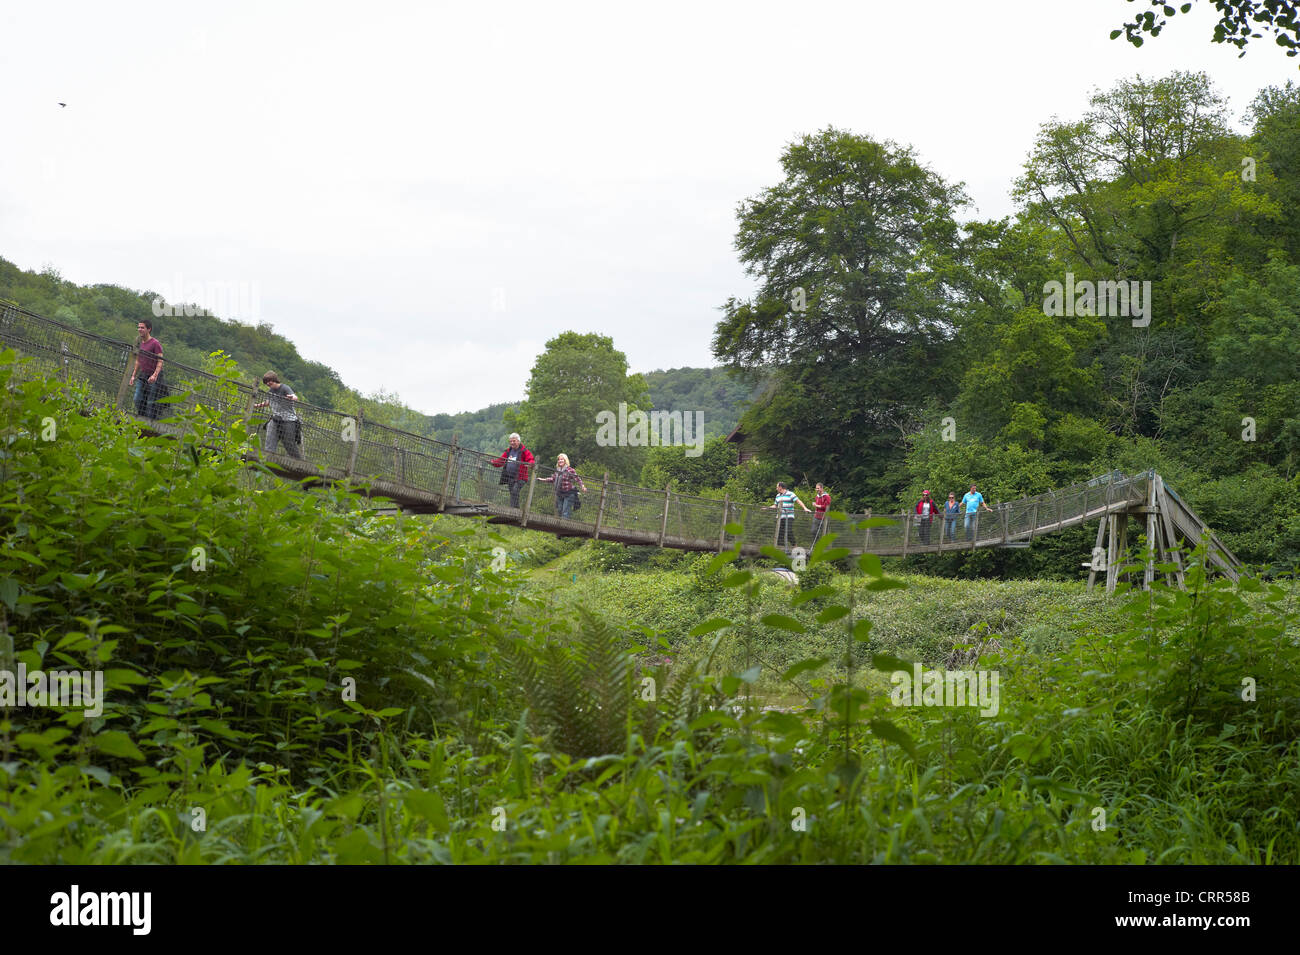 Suspension footpath bridge over the river wye at The Biblins near symonds yat herefordshire england - Stock Image